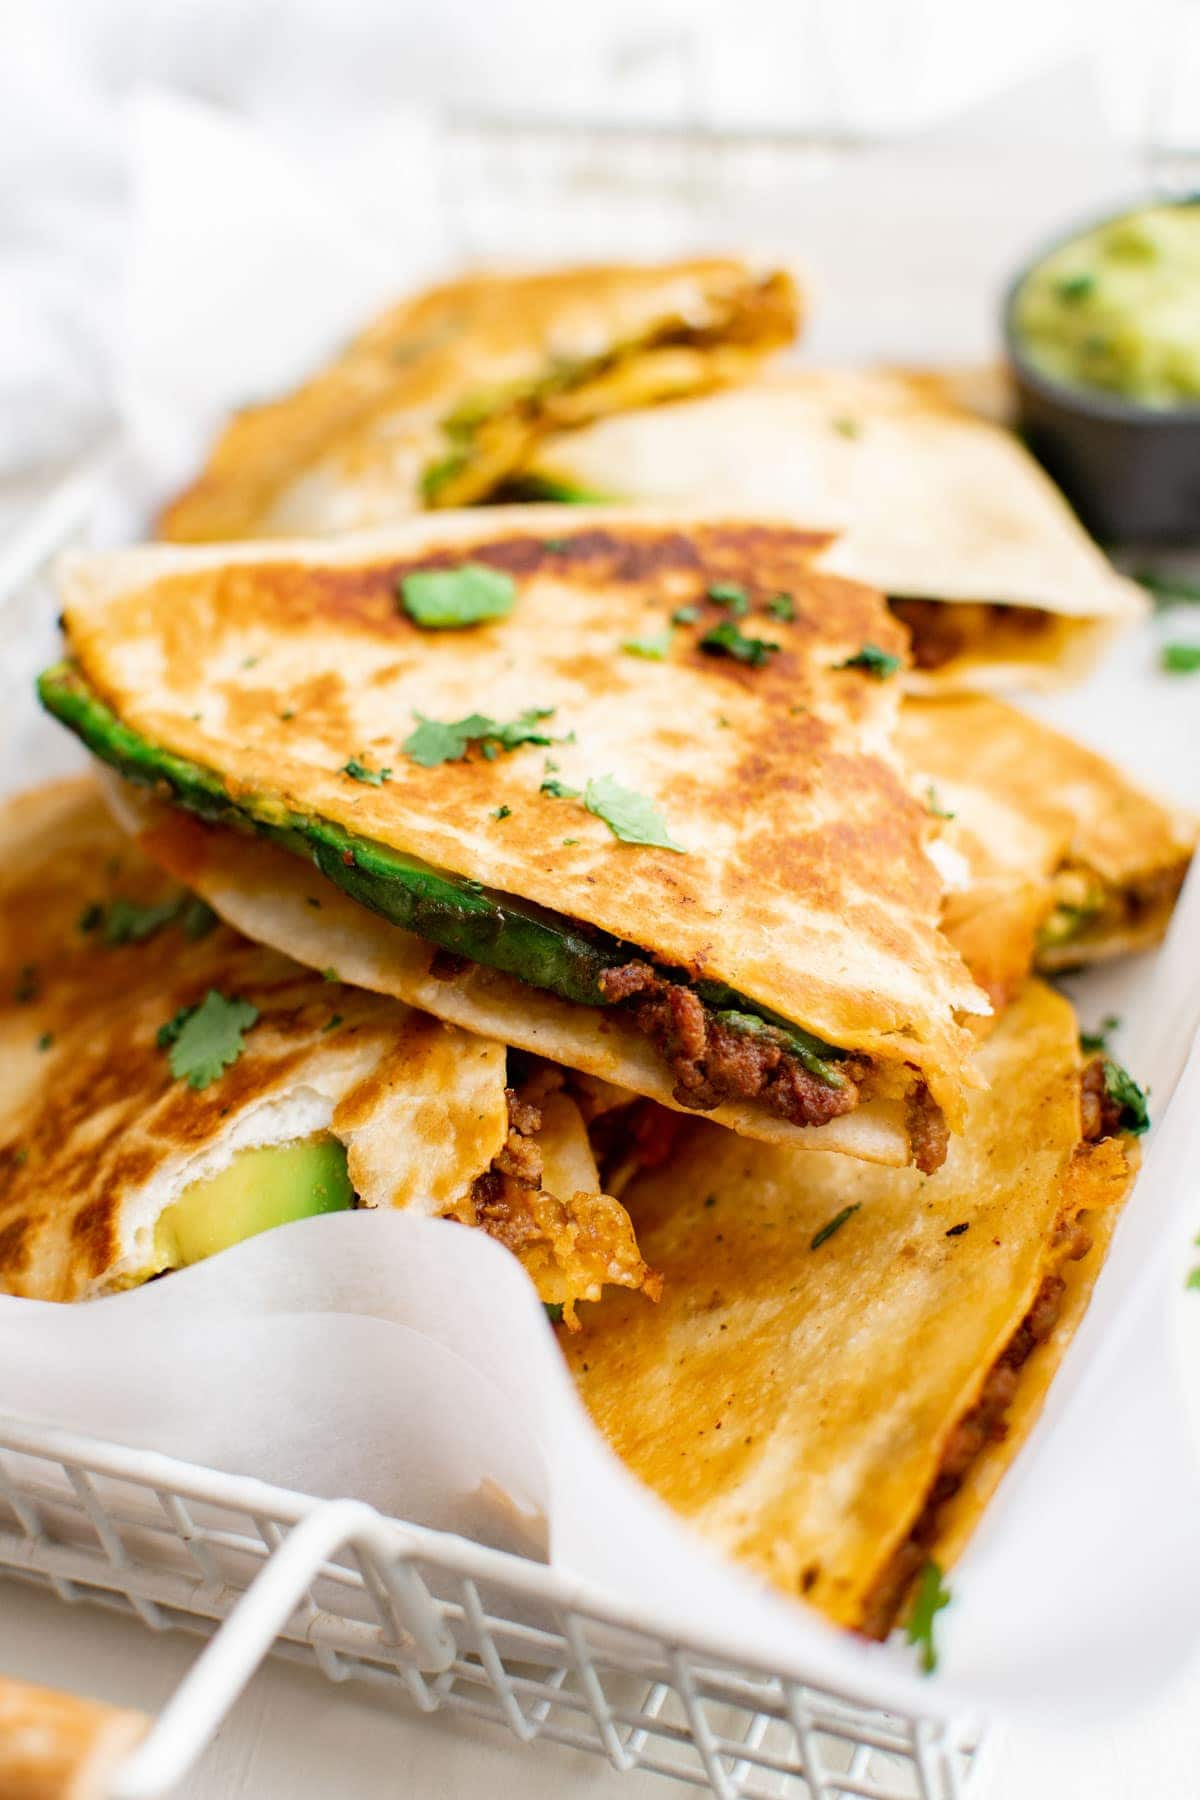 slices of quesadillas with ground beef